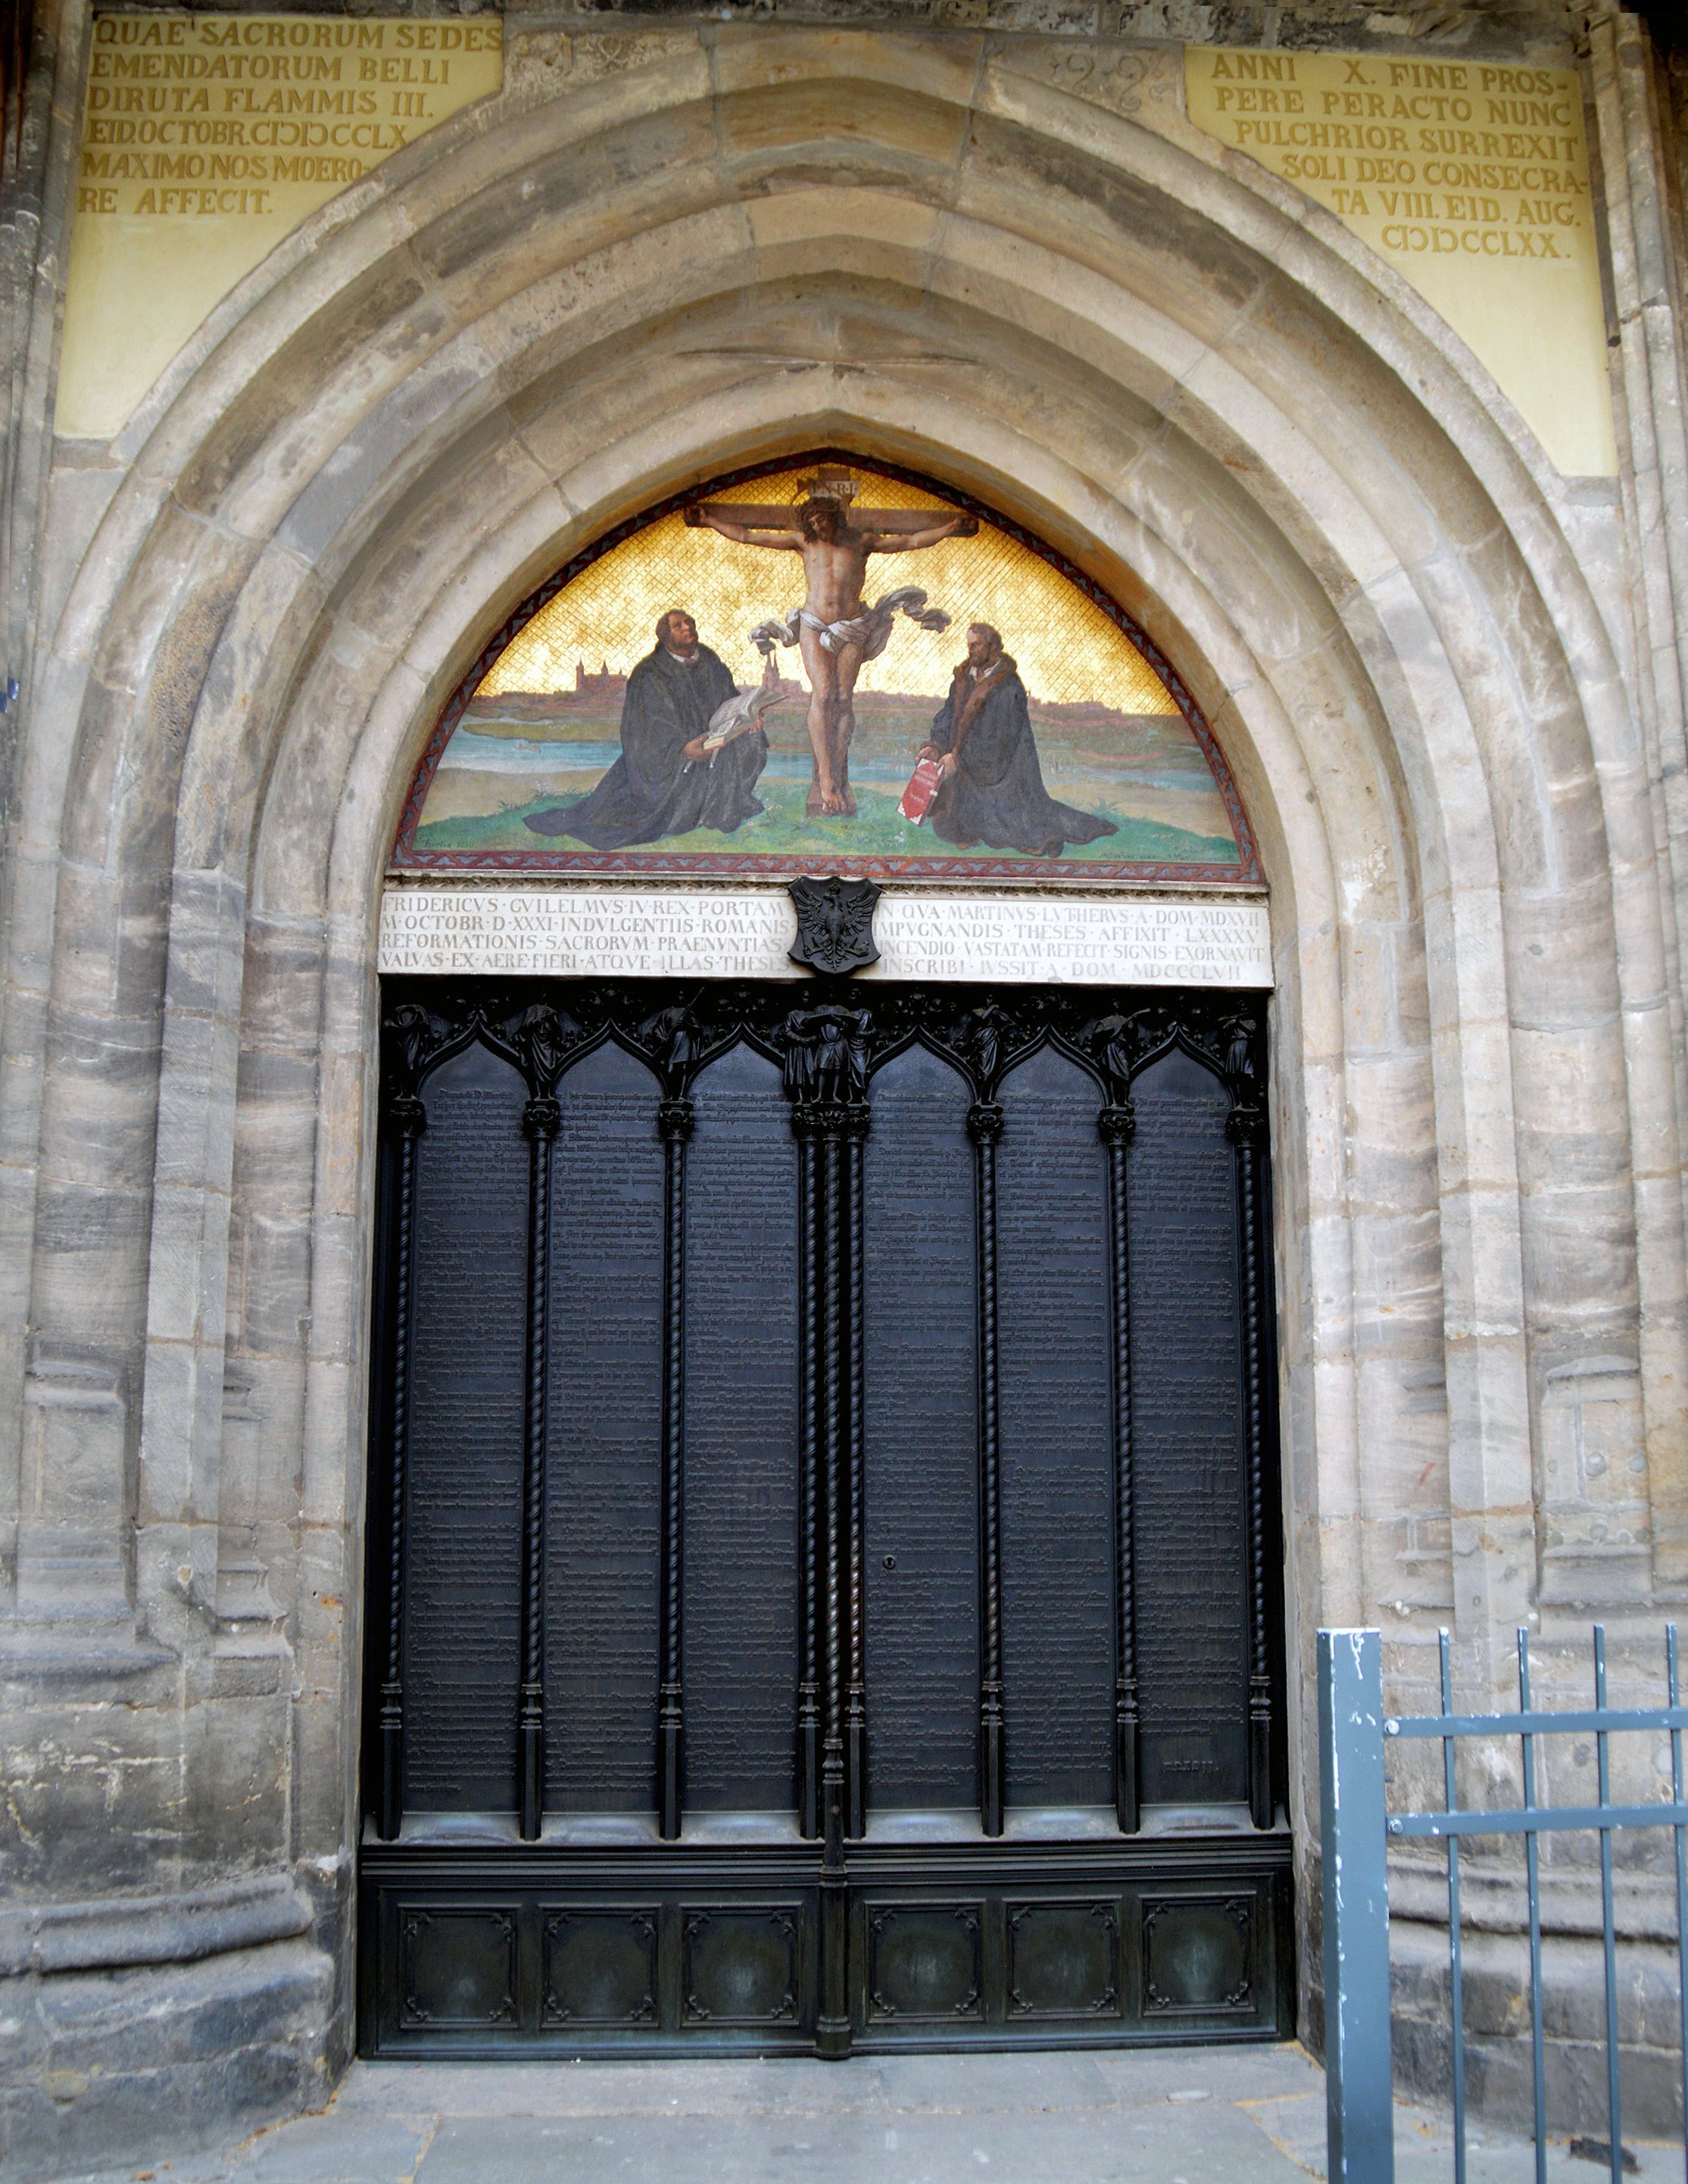 The door at Wittenberg's Castle Church where Martin Luther reportedly posted his 95 Theses on Oct. 31, 1517, launching the Protestant Reformation. There has been some debate about whether he actually posted it on the church door. But many trust the account because at the time, the door served as a sort of university bulletin board. Today, his theses are engraved in the door. Photo by Klaus Ulrich Ruof.